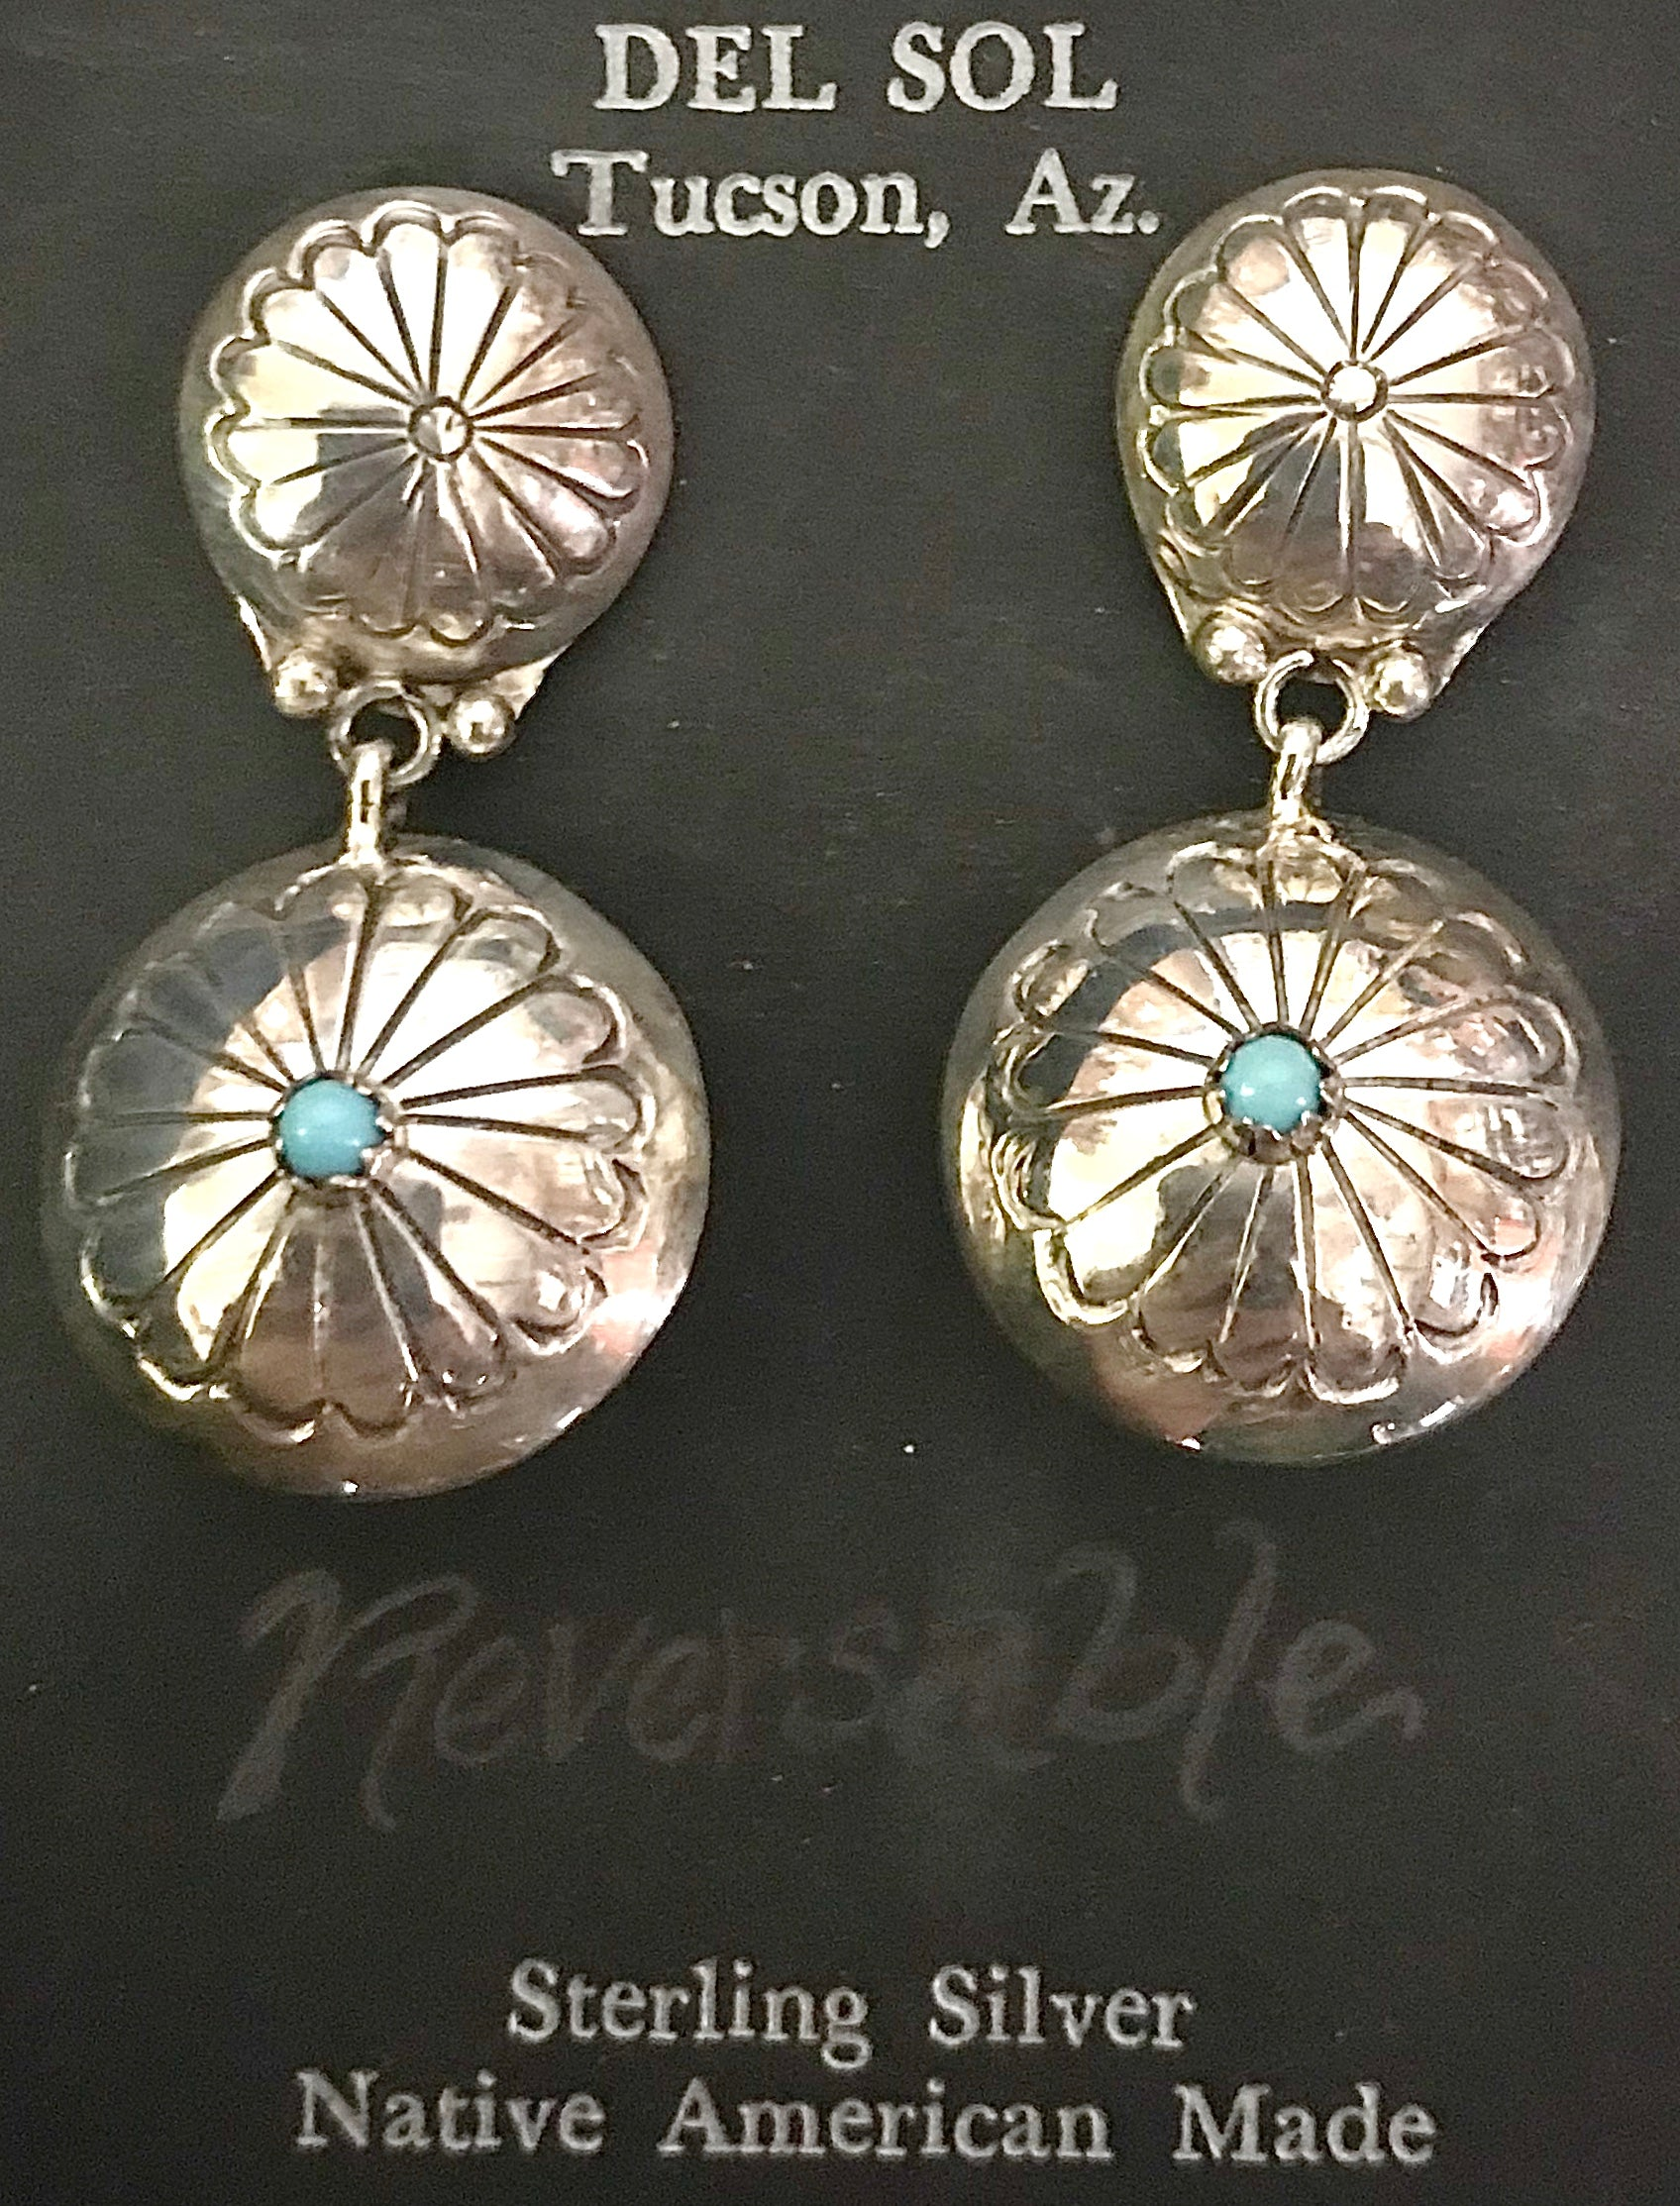 Navajo, Native American handcrafted, sterling silver, genuine stone earrings, made in New Mexico, USA.